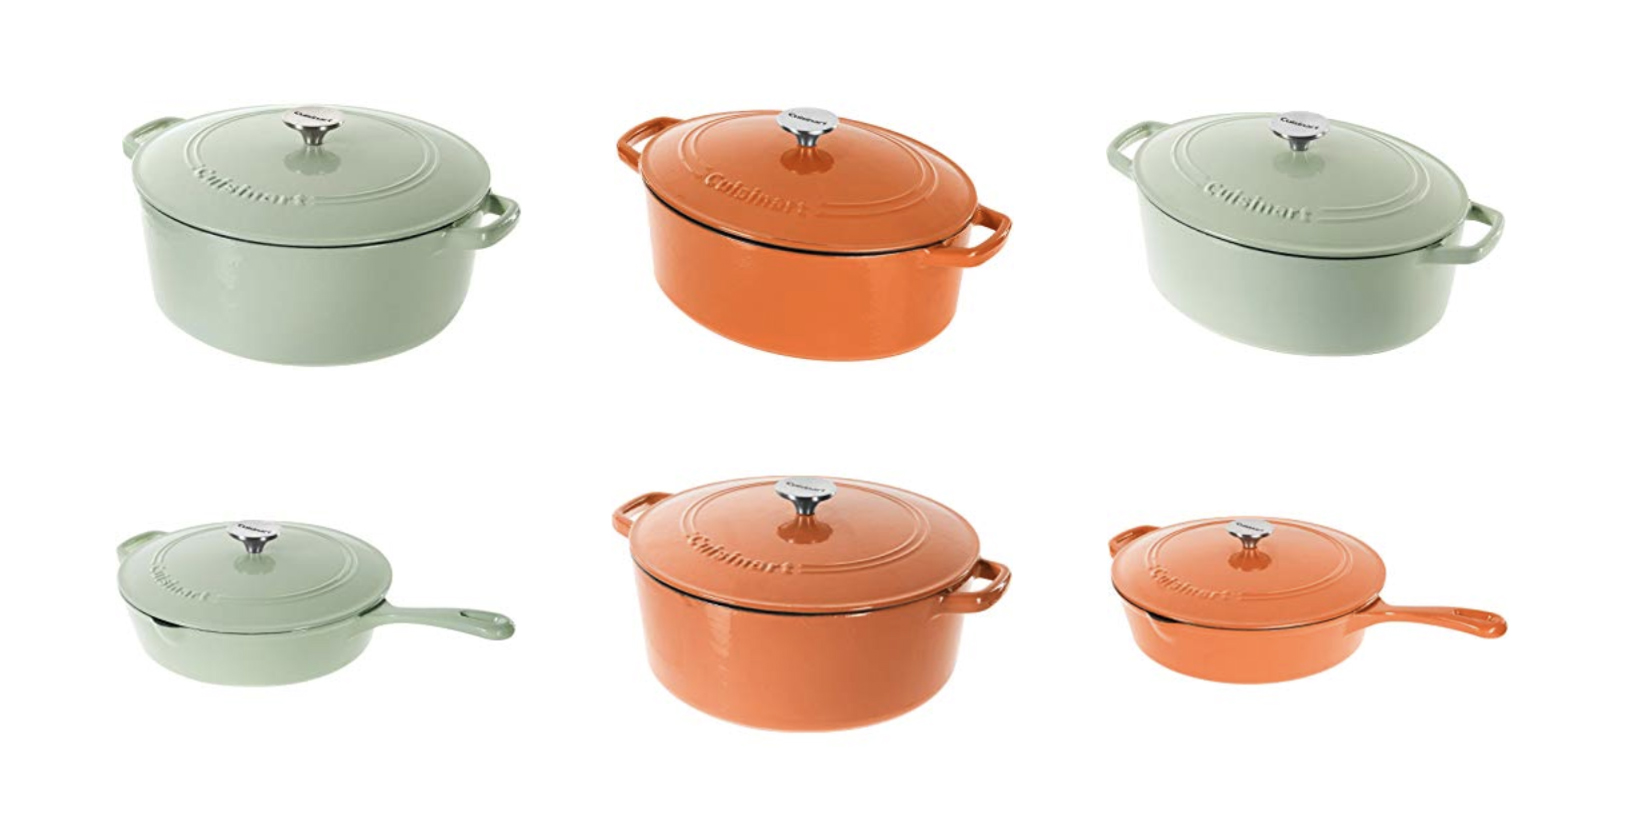 Today only, Amazon's Gold Box has Cuisinart cast iron cookware from $55